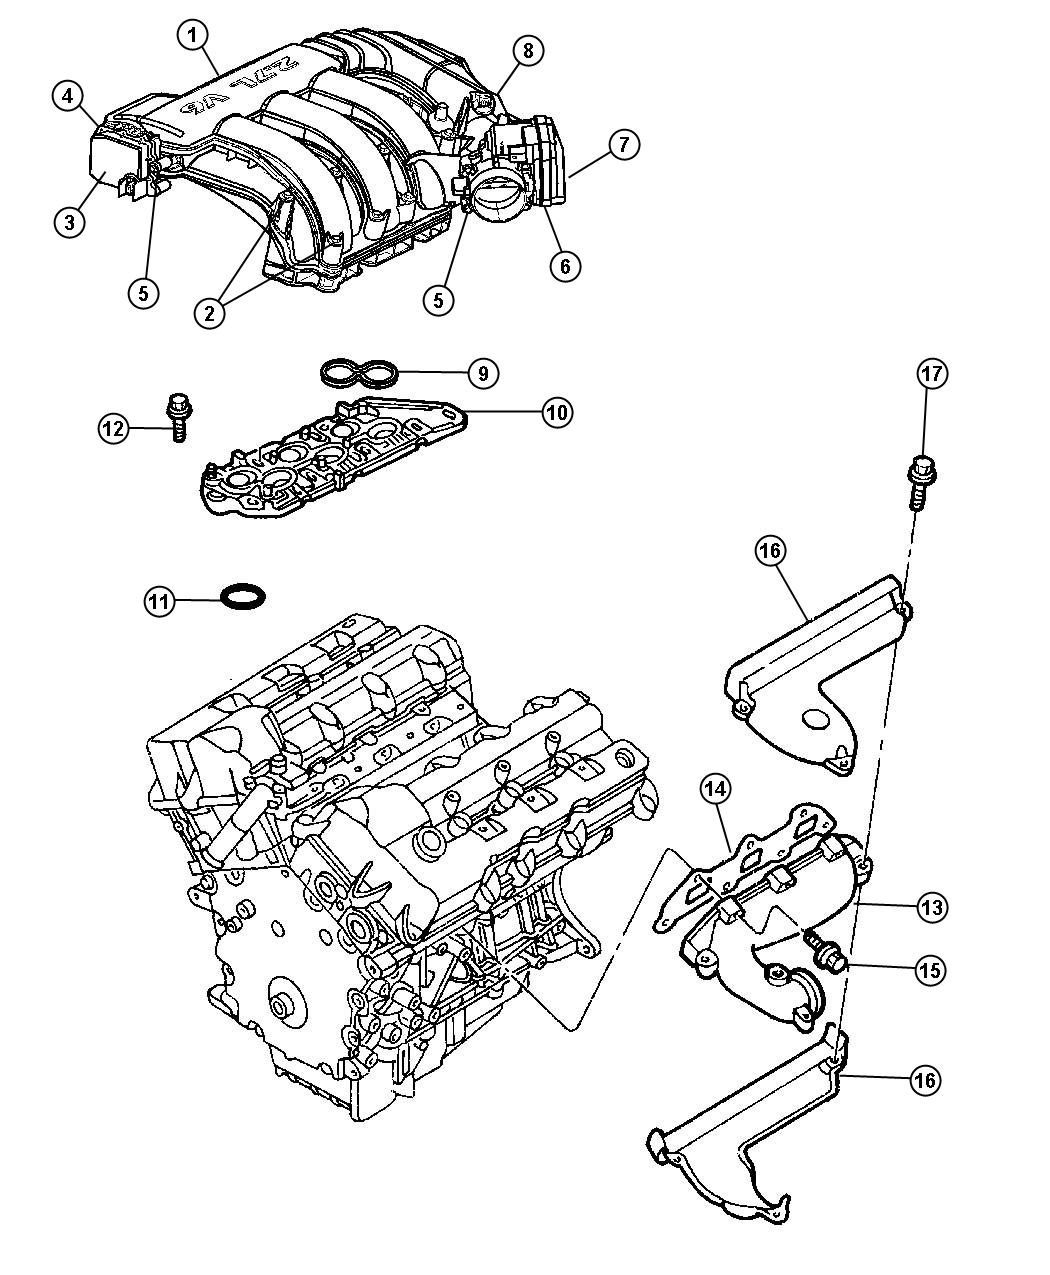 2010 Dodge Journey Actuator package. Manifold tuning valve